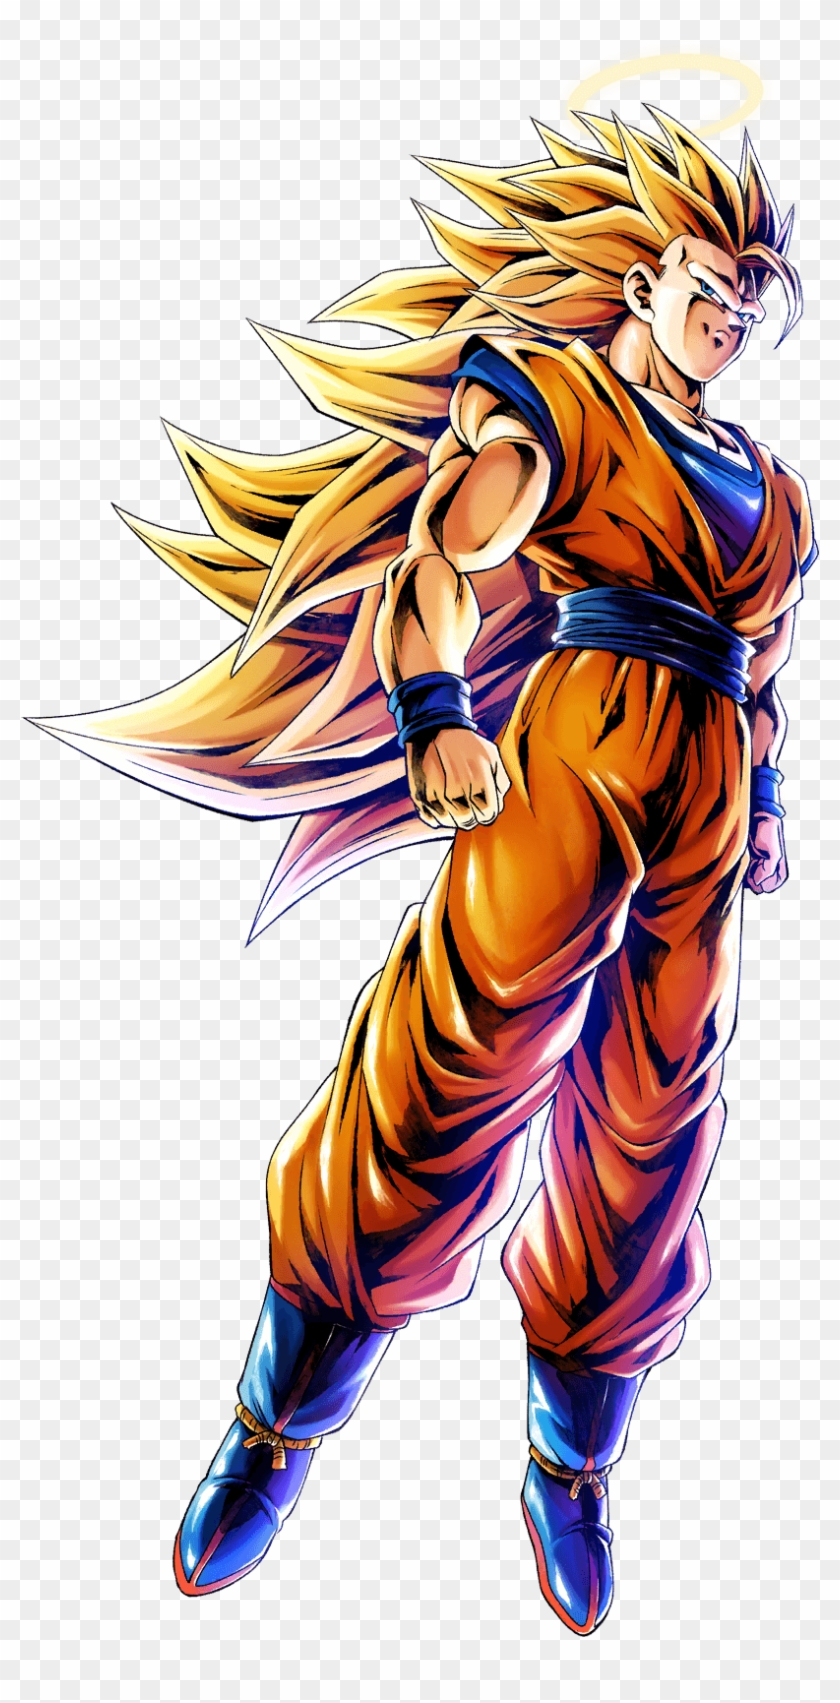 Gohan Png Dragon Ball Legends Super Saiyan 3 Goku